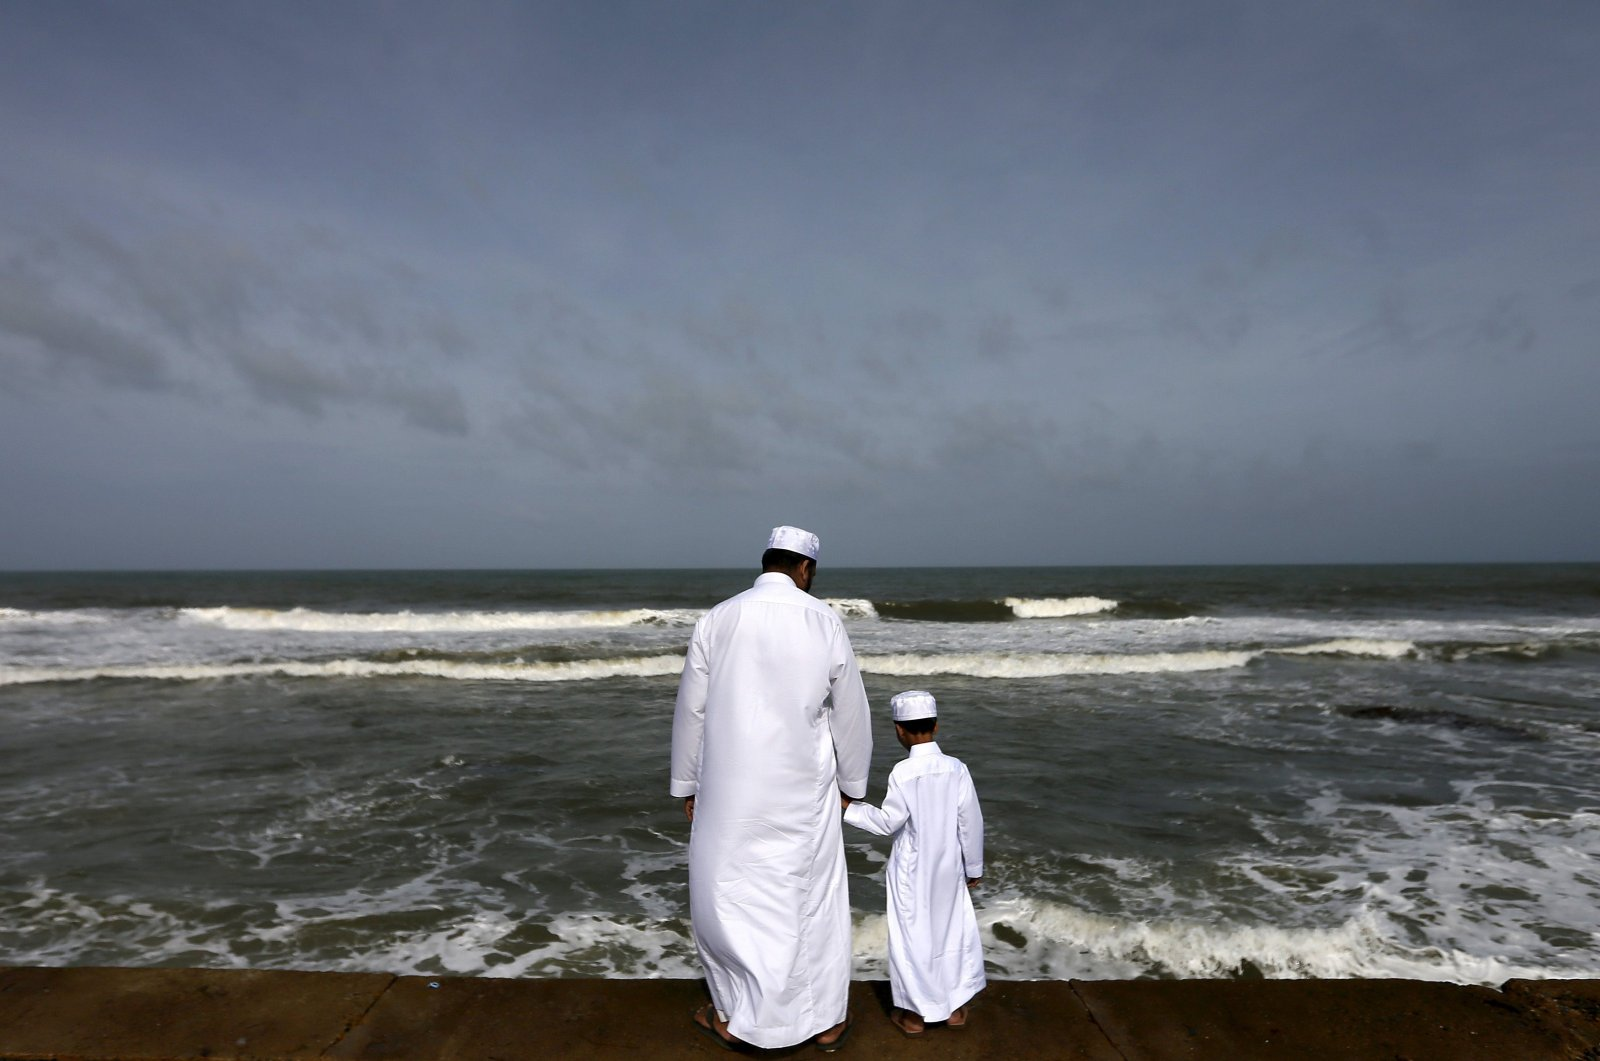 A Sri Lankan Muslim father and son stand in front of the sea during morning prayers of Eid al-Fitr celebrations marking the end of Ramadan, in Colombo, July 18, 2015. (Reuters Photo)